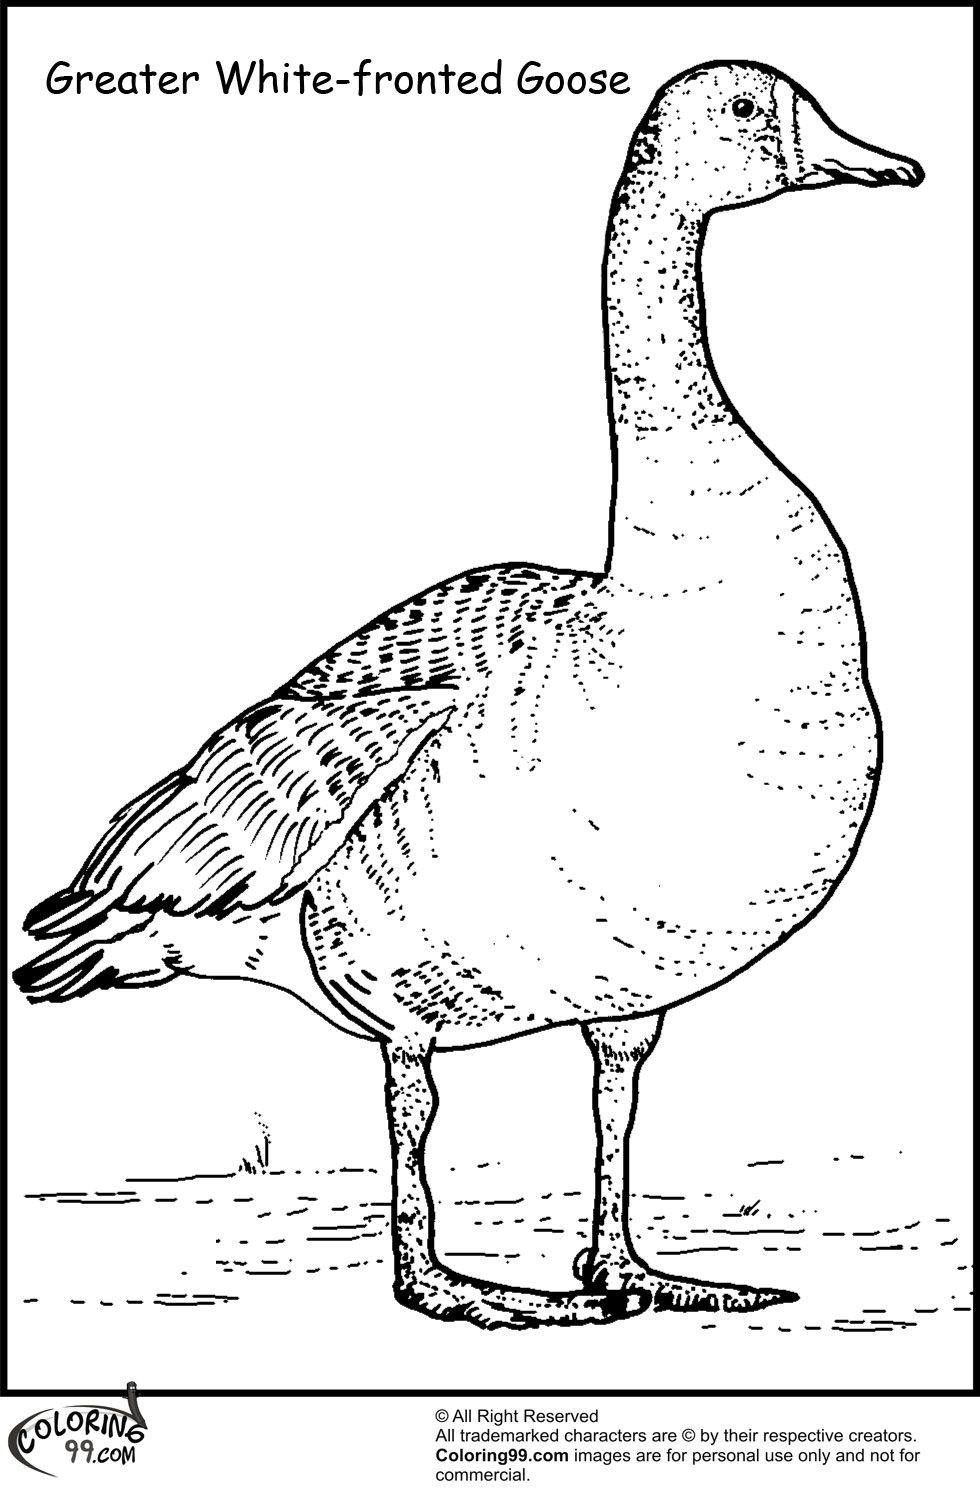 migrating birds coloring pages - photo#11